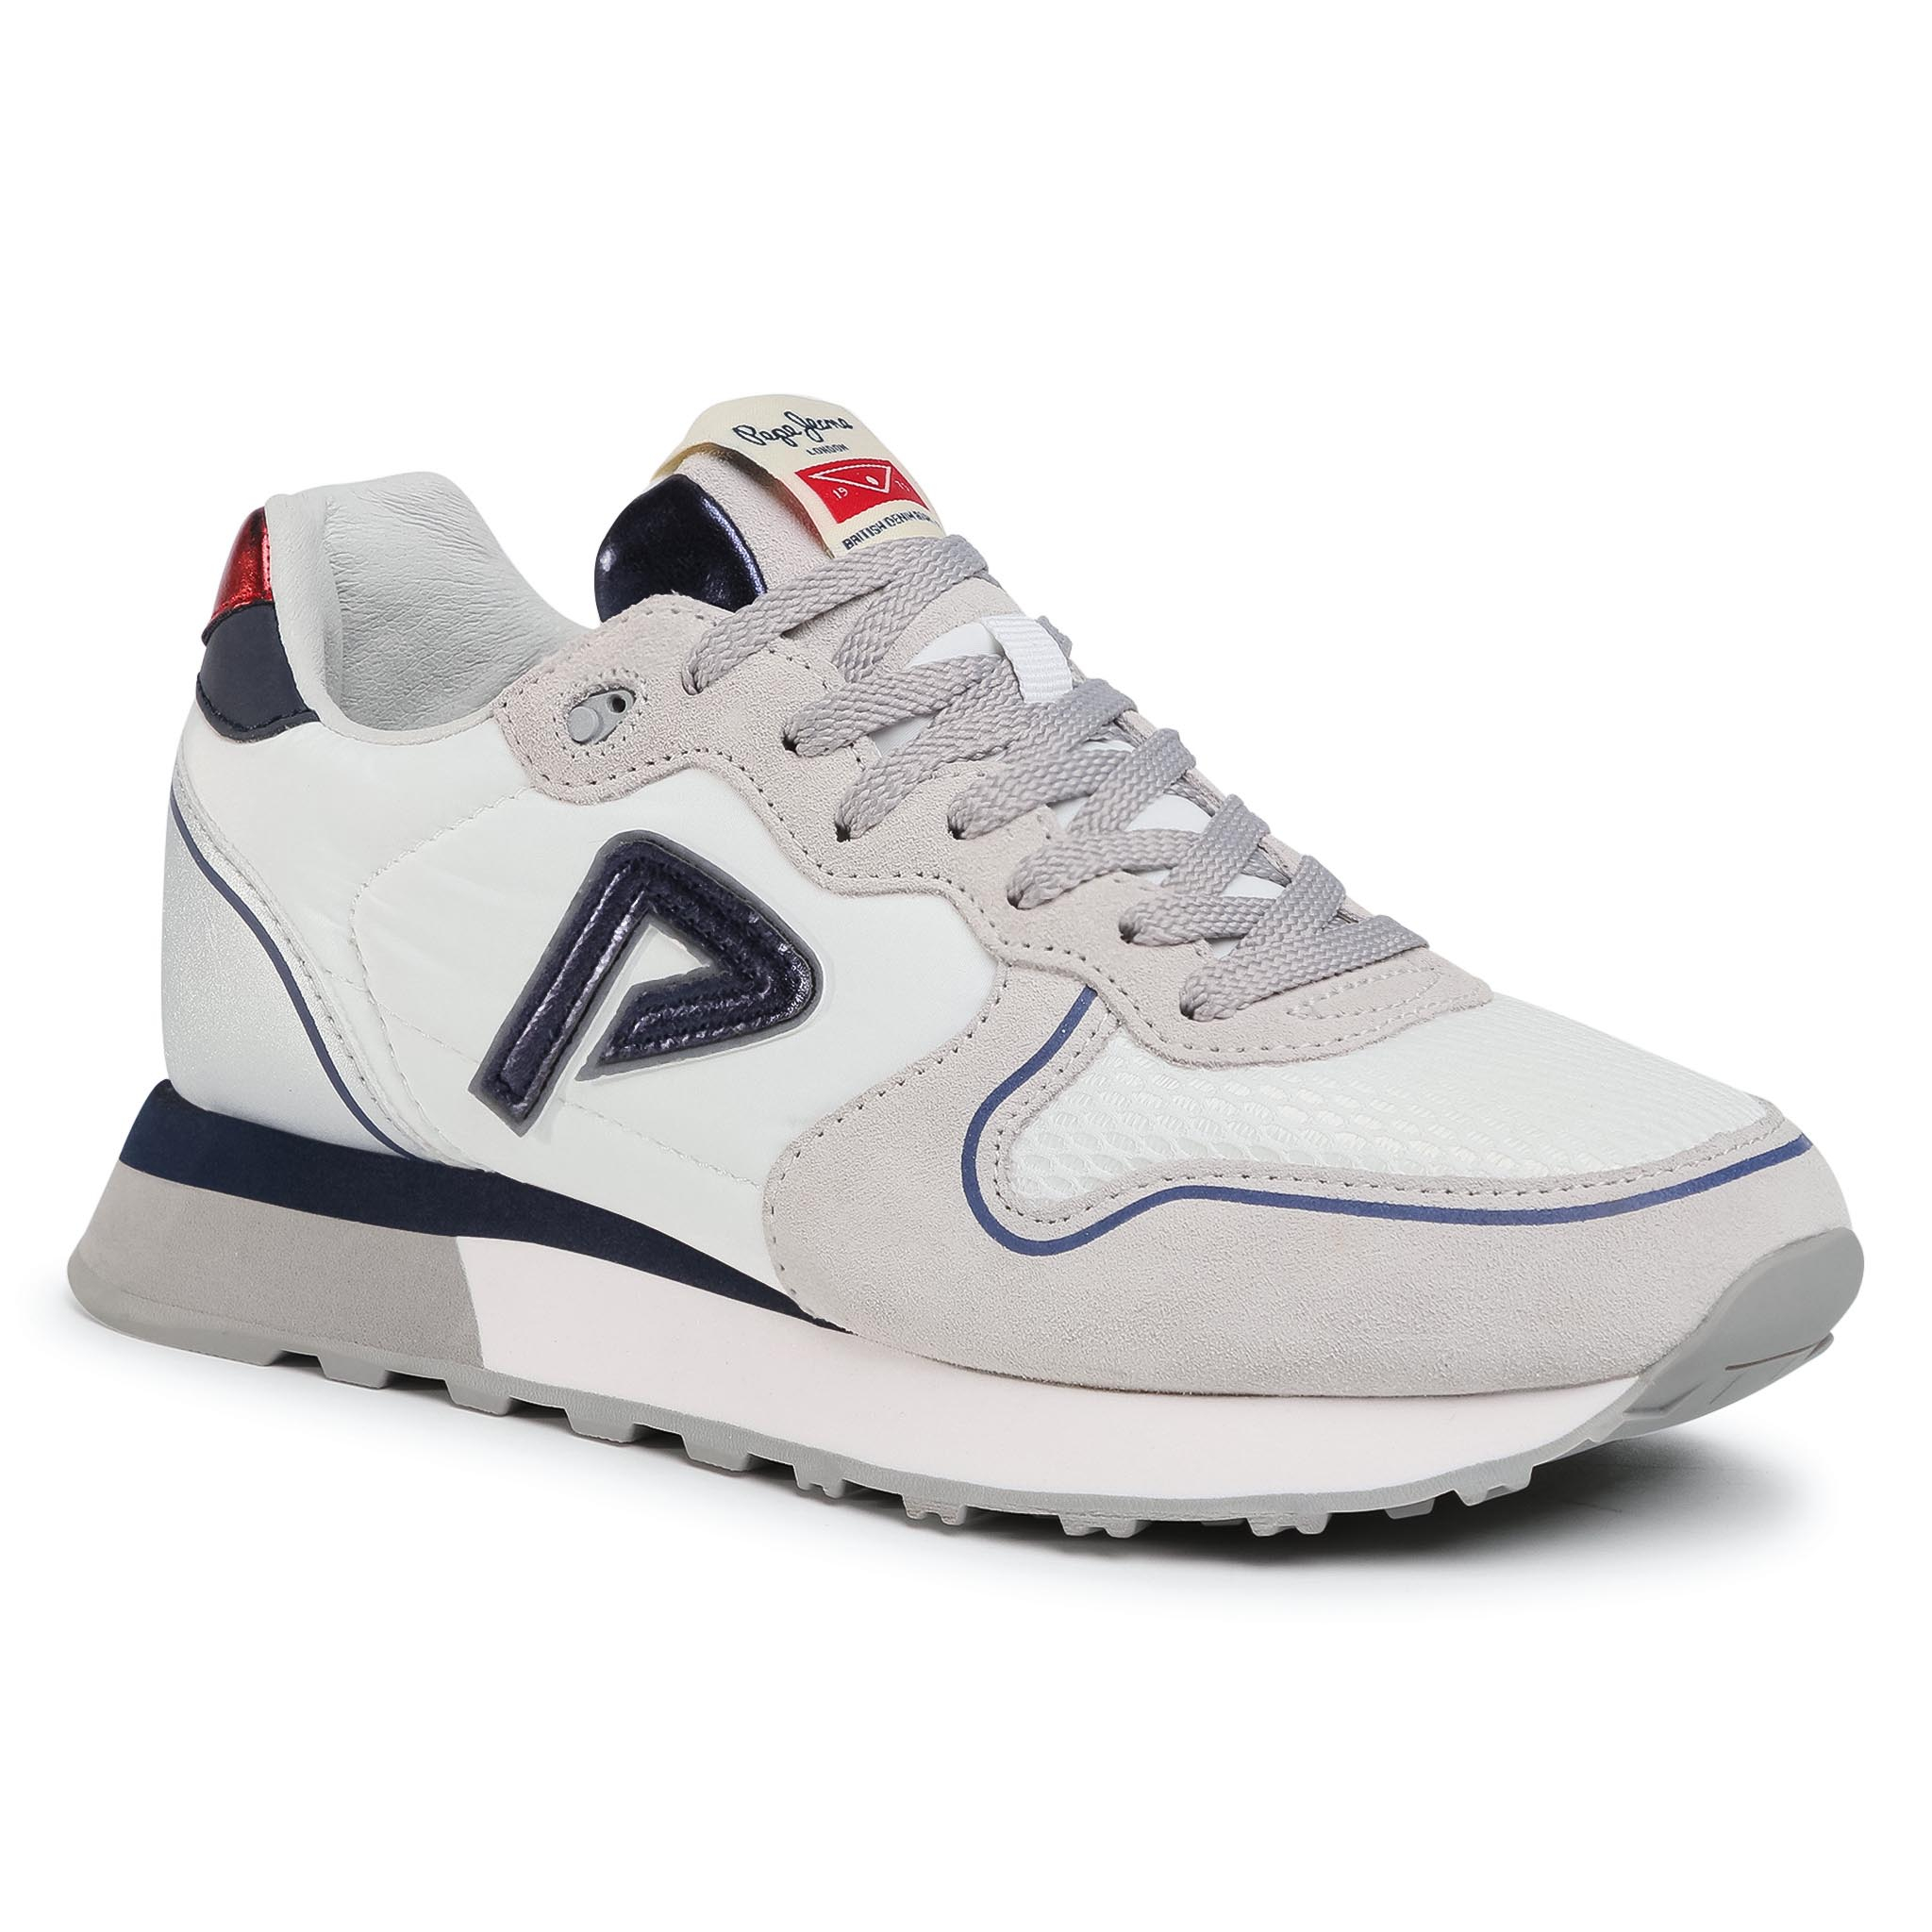 Sneakers PEPE JEANS - Klein Original PLS31093  White 800